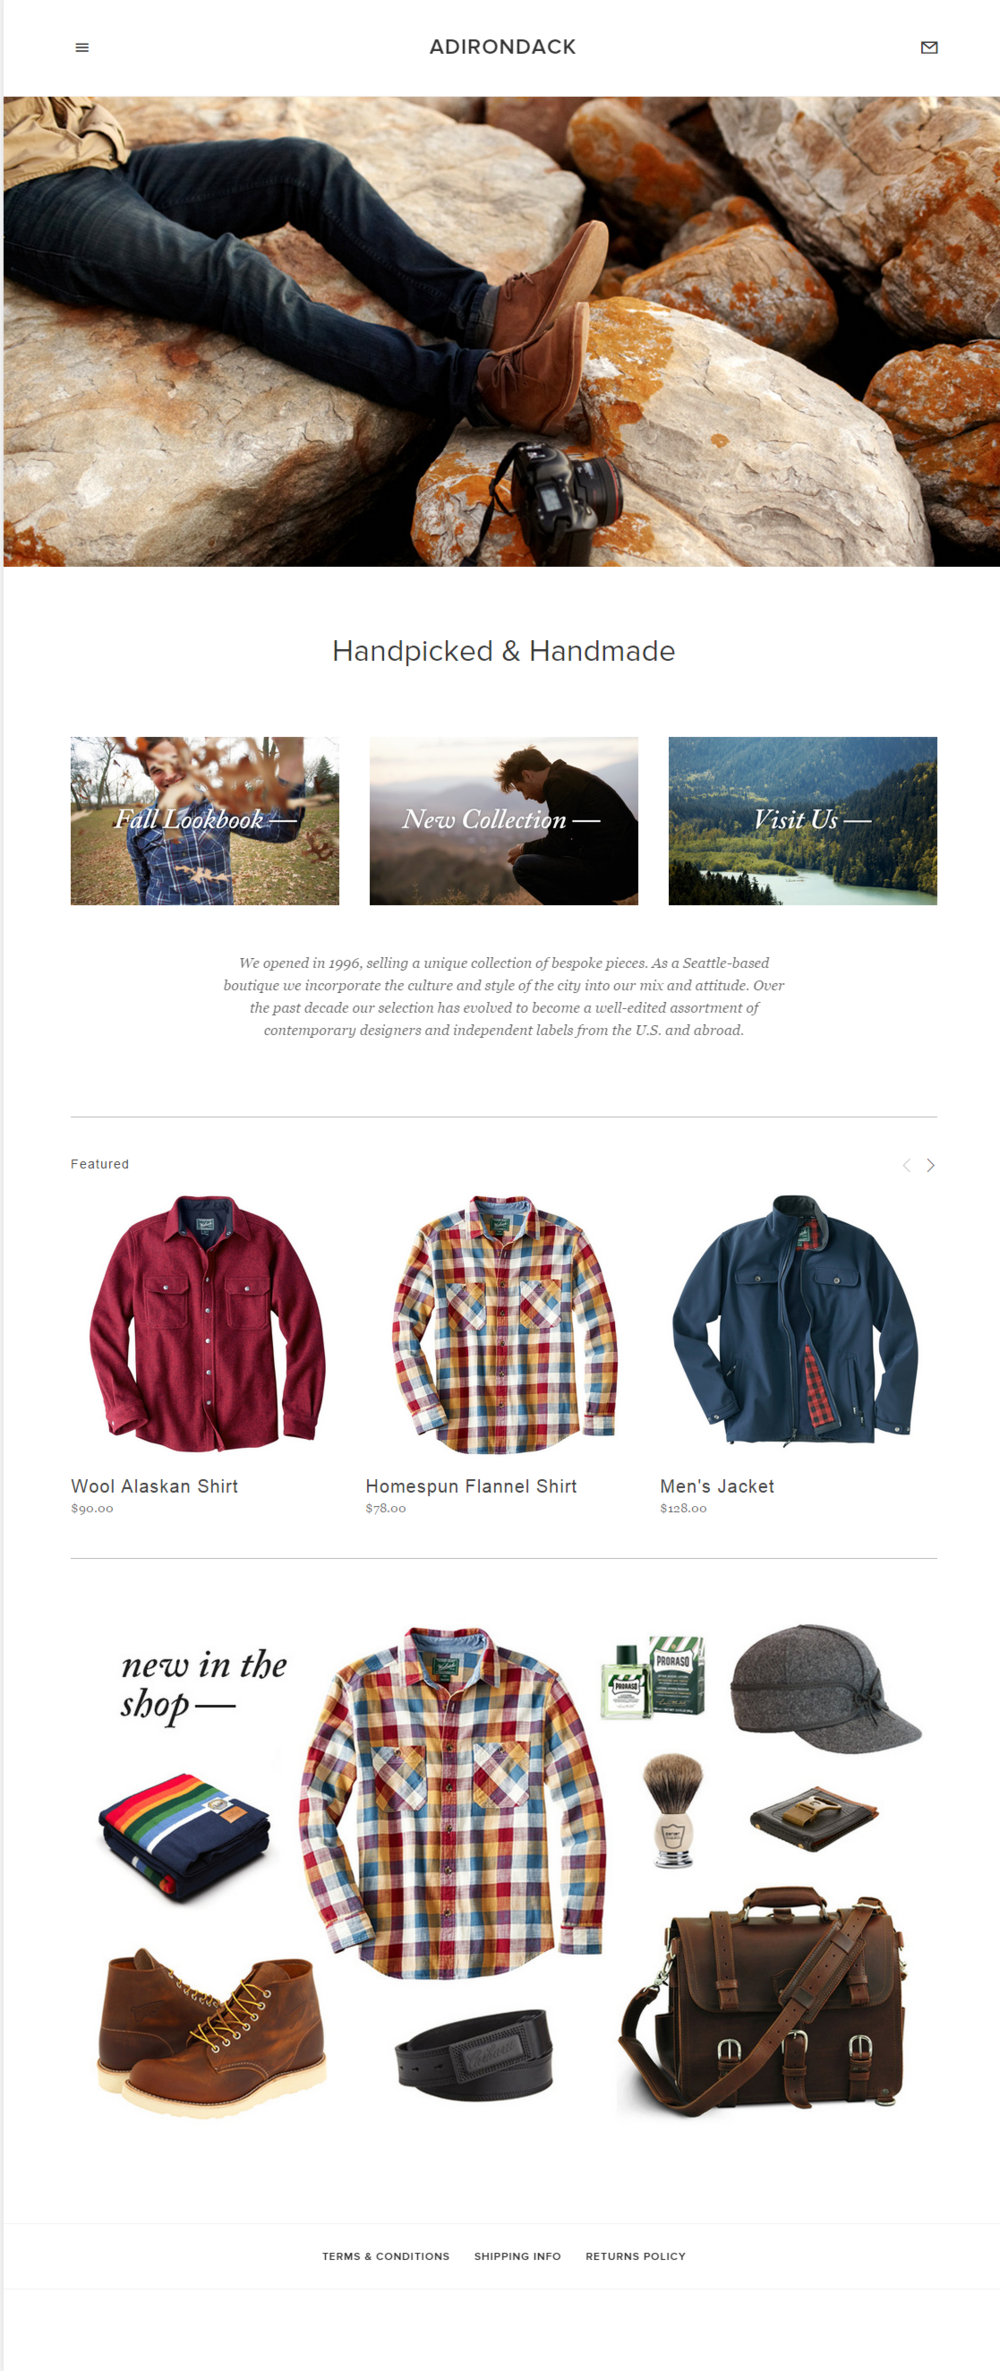 great adirondack template squarespace photos how to find which